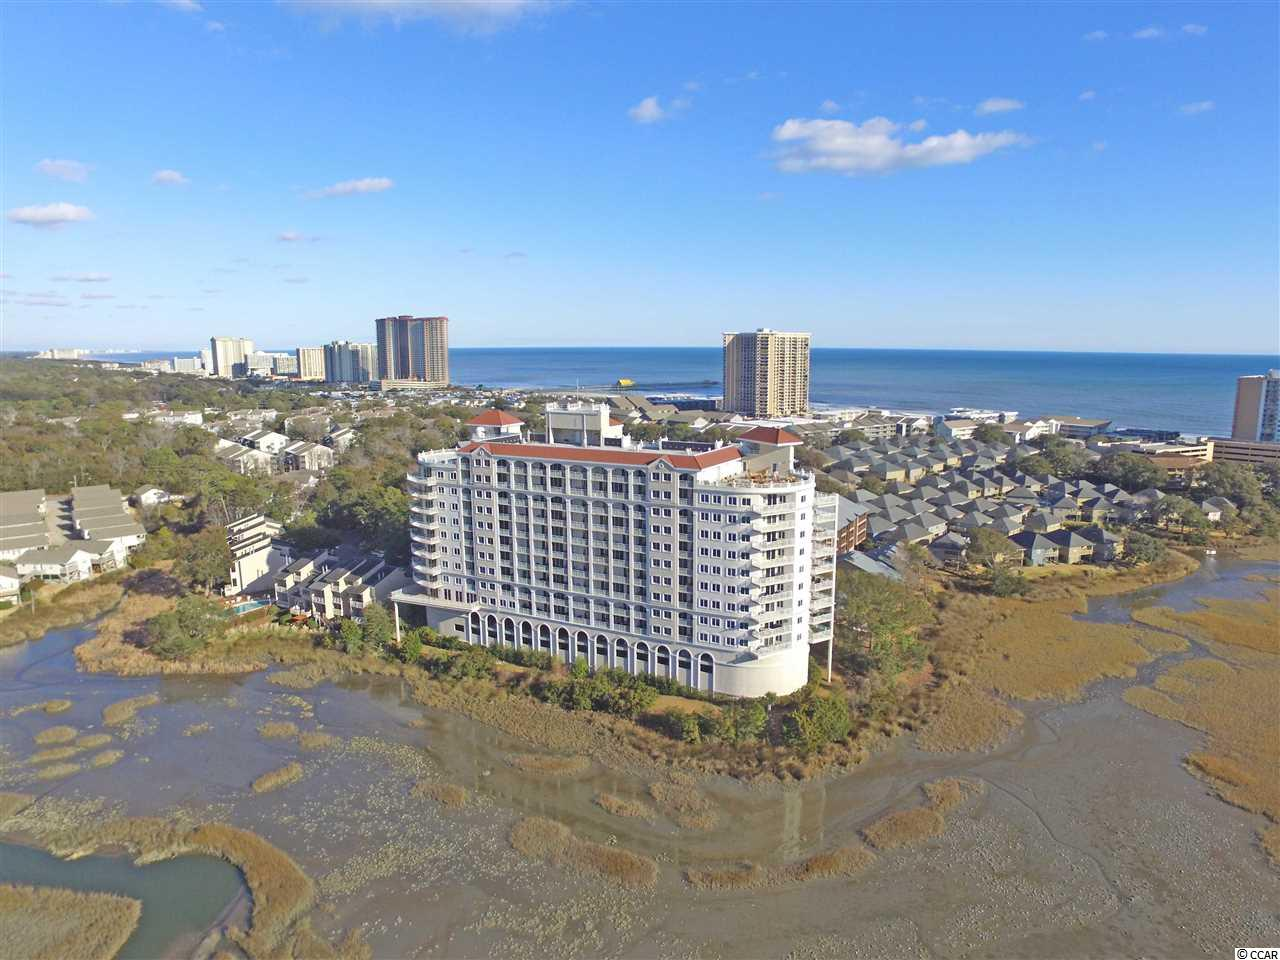 Condo / Townhome / Villa for Sale at 9547 Edgerton Drive 9547 Edgerton Drive Myrtle Beach, South Carolina 29572 United States